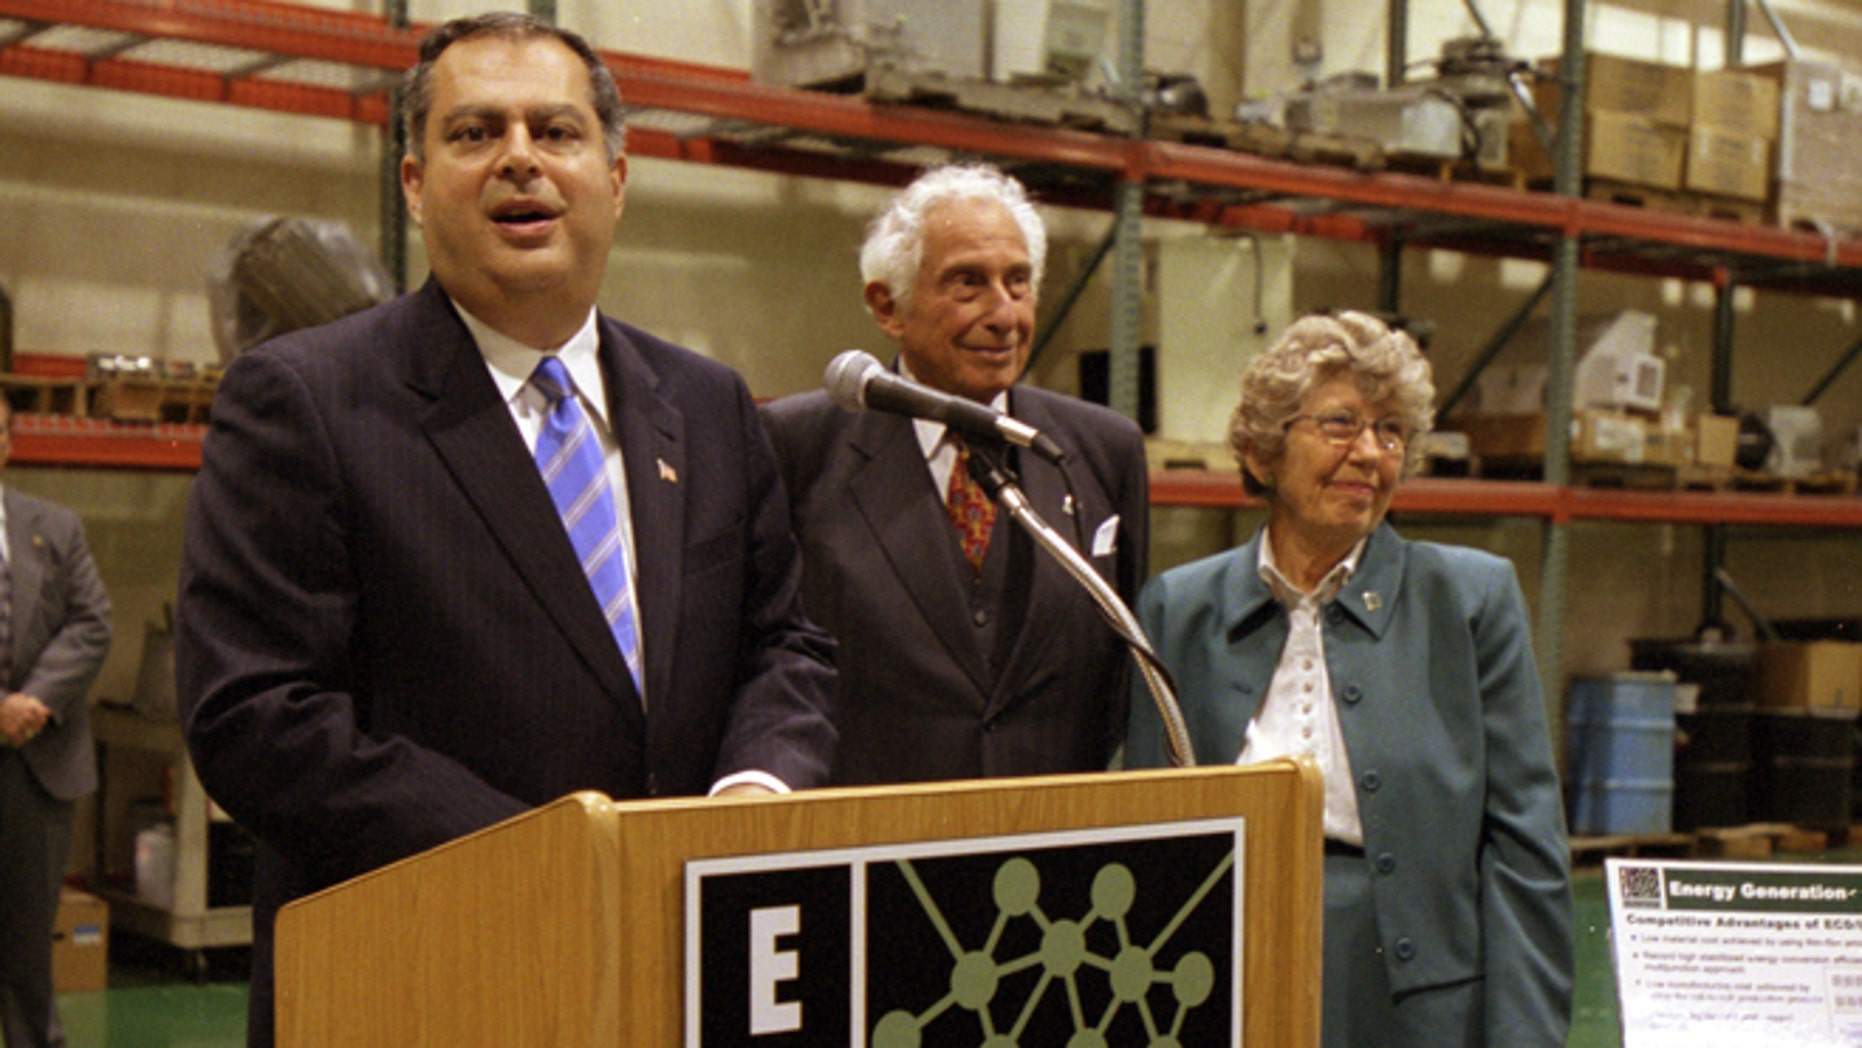 FILE -  This Aug. 23, 2002 file photo shows Stanford Ovshinsky, center, co-founder of  Energy Conversion Devices Inc. with his wife Iris, right, appeared with U.S. Secretary of Energy Spencer Abraham at a news conference at the companys offices in Rochester Hills, Mich., on Aug. 23, 2002. Stan Ovshinsky, 89, died Wednesday, Oct. 17, 2012, at his home in Bloomfield Hills from complications of prostate cancer. (AP Photo/Kathleen Wayt, file)